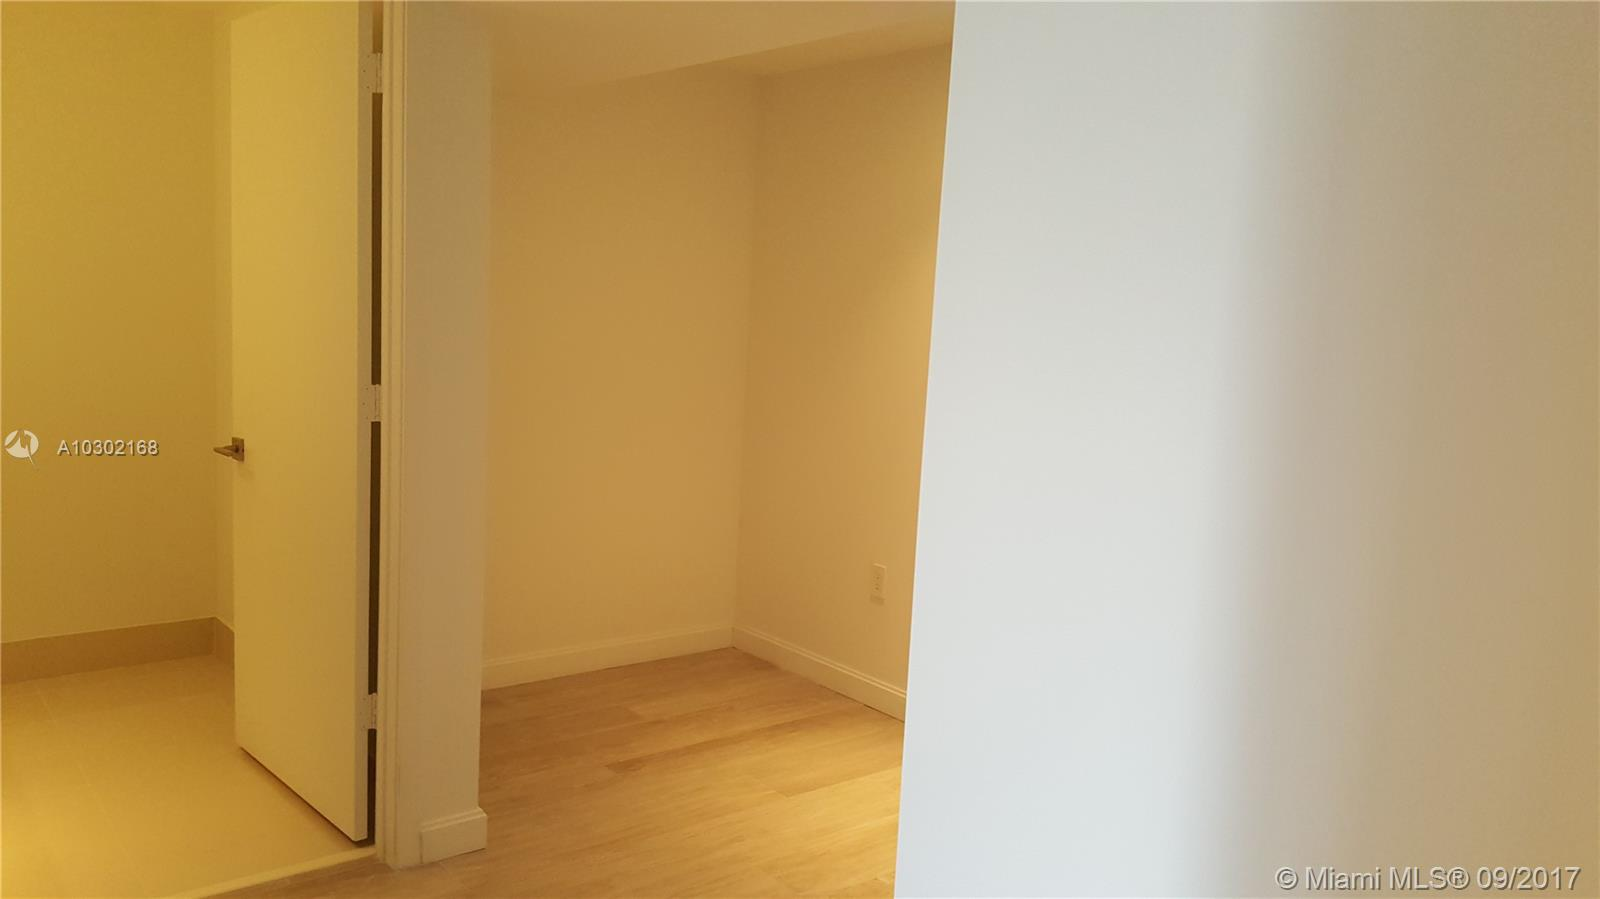 45 SW 9th St, Miami, FL 33130, Brickell Heights East Tower #1110, Brickell, Miami A10302168 image #6